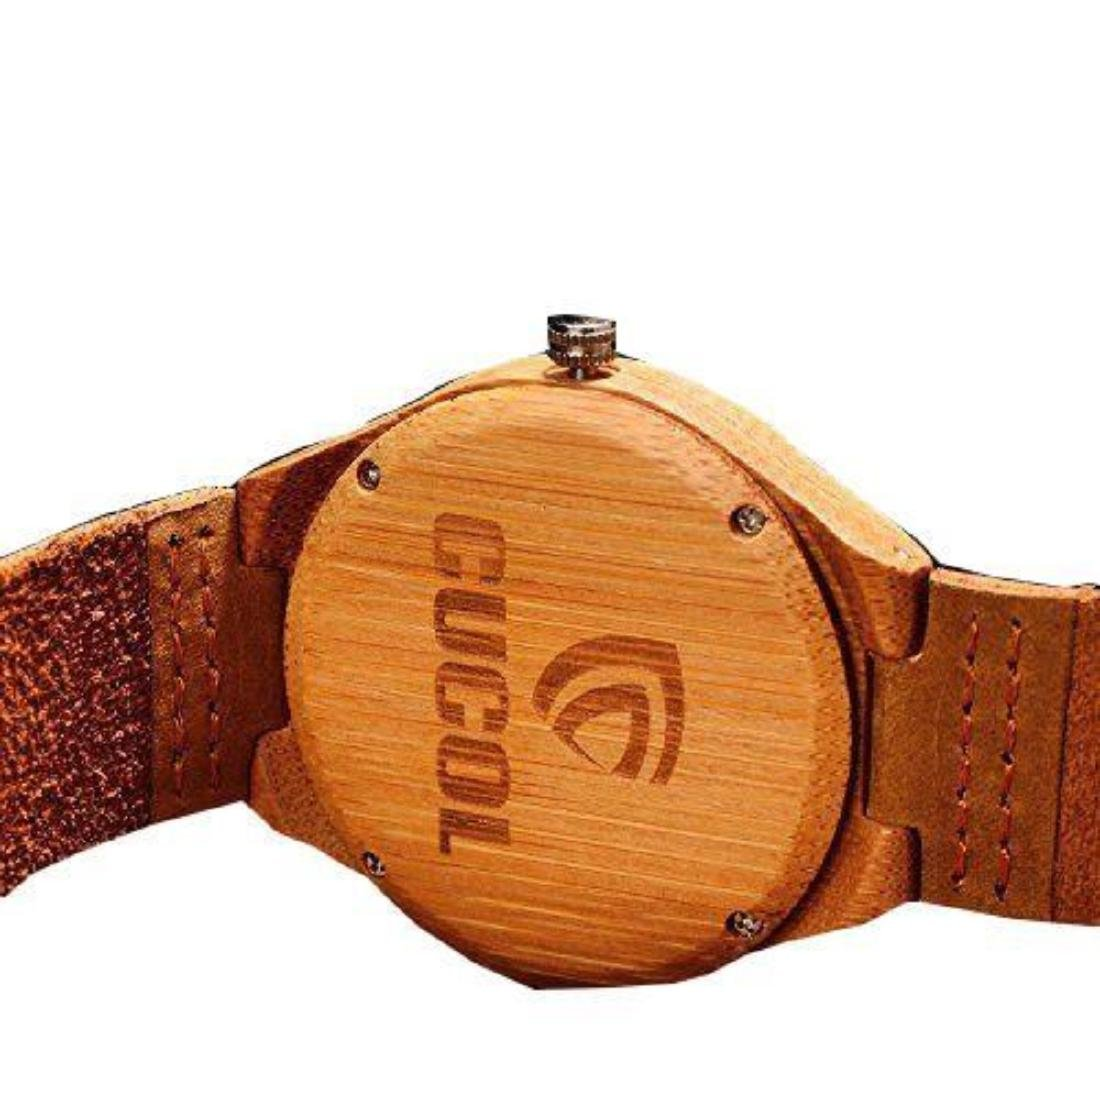 Cucol Wrist Watches Men's Bamboo Wooden With Brown - 3